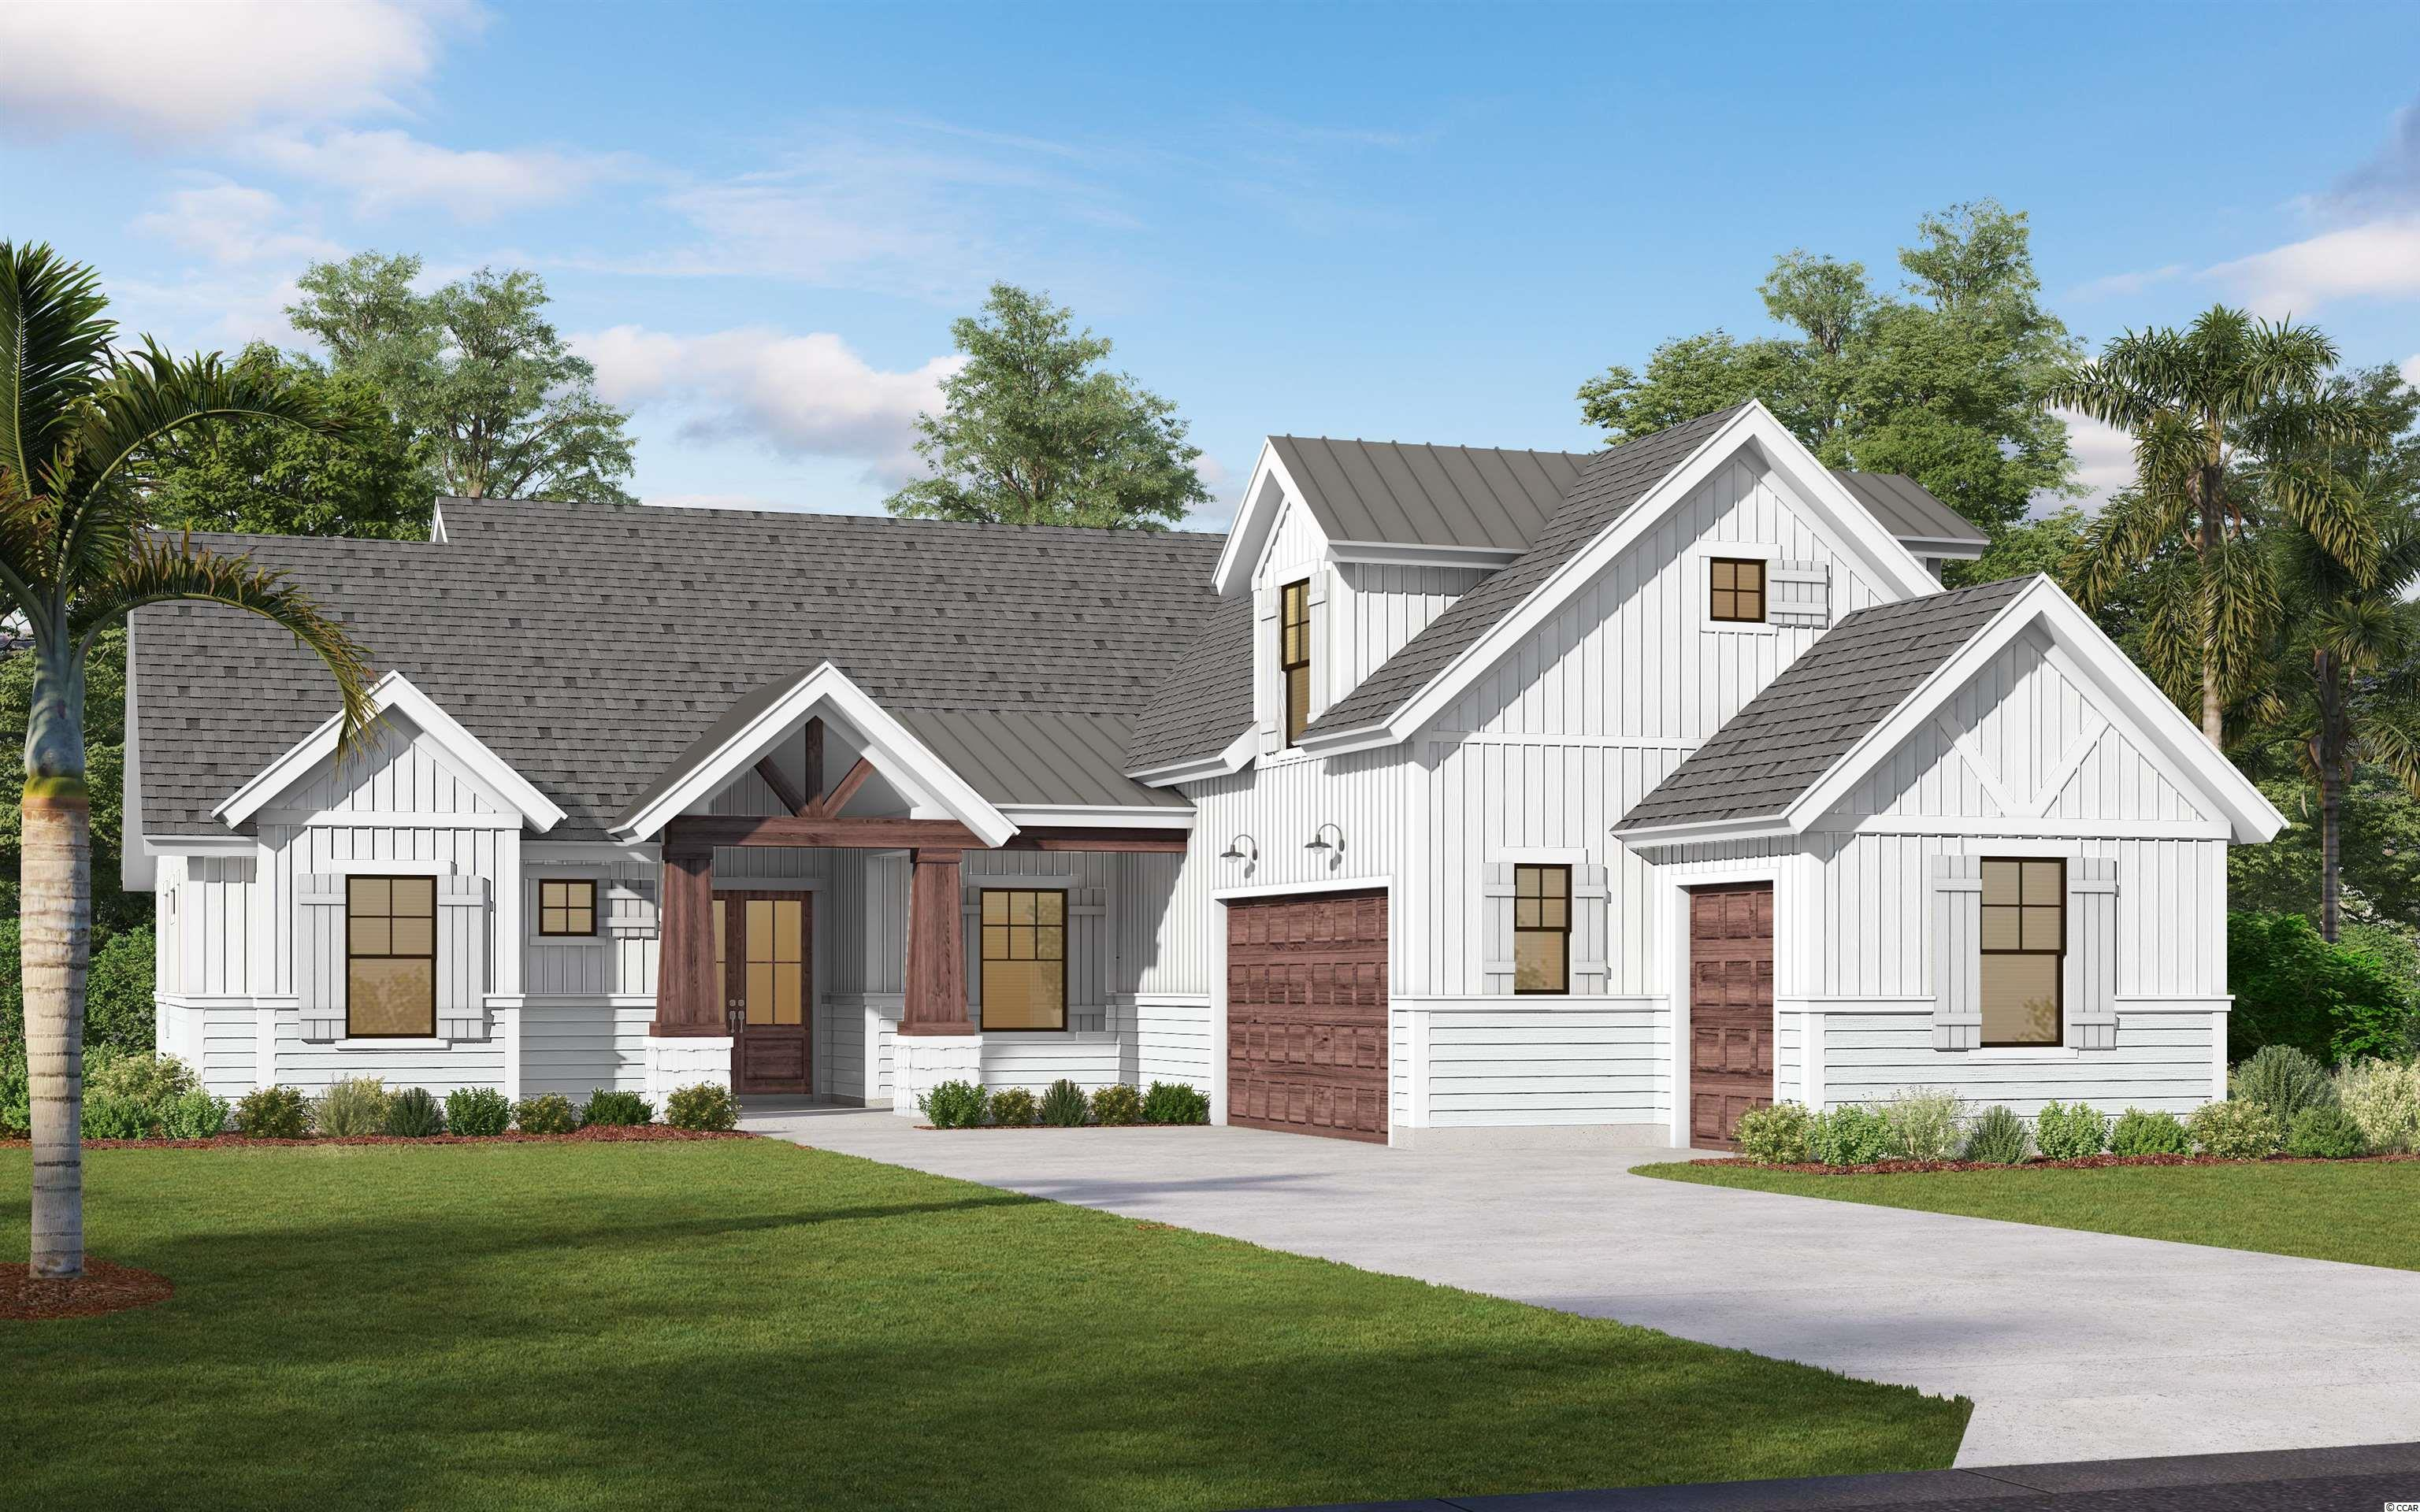 """Welcome to BEAUMONT PARK in Pawleys Island!  New development just minutes from the beach, restaurants, grocery stores and more. One acre home site with NO HOA. Custom builder. This  Carolina  home  plan is to be built with approx. 2007 Heated Square Feet, with an """"optional bonus room"""" to make the total heated sqft to 2286.  Contemporary craftsman style 3 bedroom, 2 bath home with Hardie plank, shake, board & batten siding along with brick accenting exterior. An """"optional """" Bonus Room could be 4th bedroom. Bonus room is not included in listed price. This is an additional cost.  Two car attached garage.   A beautiful covered porch and  a patio to enjoy your morning coffee or afternoon cocktail with friends. This home has many amazing features such as 9 foot and vaulted ceilings on first floor, 8 ft ceilings on second floor, rounded sheet rock corners, crown molding in main living areas.  An open floor plan with a large great room, dining and breakfast nook. The  Master suite has tray ceilings and master bath boosts double vanities, garden tub,  tile shower and his/her walk in closets. Beautiful interior with crown molding, tile floors throughout main living area, granite counter tops in kitchen and master bath, custom cabinets. The main living areas have tile flooring or hardwood flooring and bedrooms are carpet. The additional two bedrooms are a split bedroom floor plan and  guest bathroom has cultured marble counter tops and tile flooring. Come see this beautiful home and start living the Pawleys Island lifestyle! Photos may show features NOT included in base price. Optional upgrades available upon request. .Disclaimer: Storm water plan may change to gain use of undisturbed area at the back of each lot. A retention pond will run along the back of property near property line. There will still be plenty of space for a great backyard. Please inquire for details, price is subject to change. Pictures are of Beaumont Park model home and not the actual home. Options, featu"""